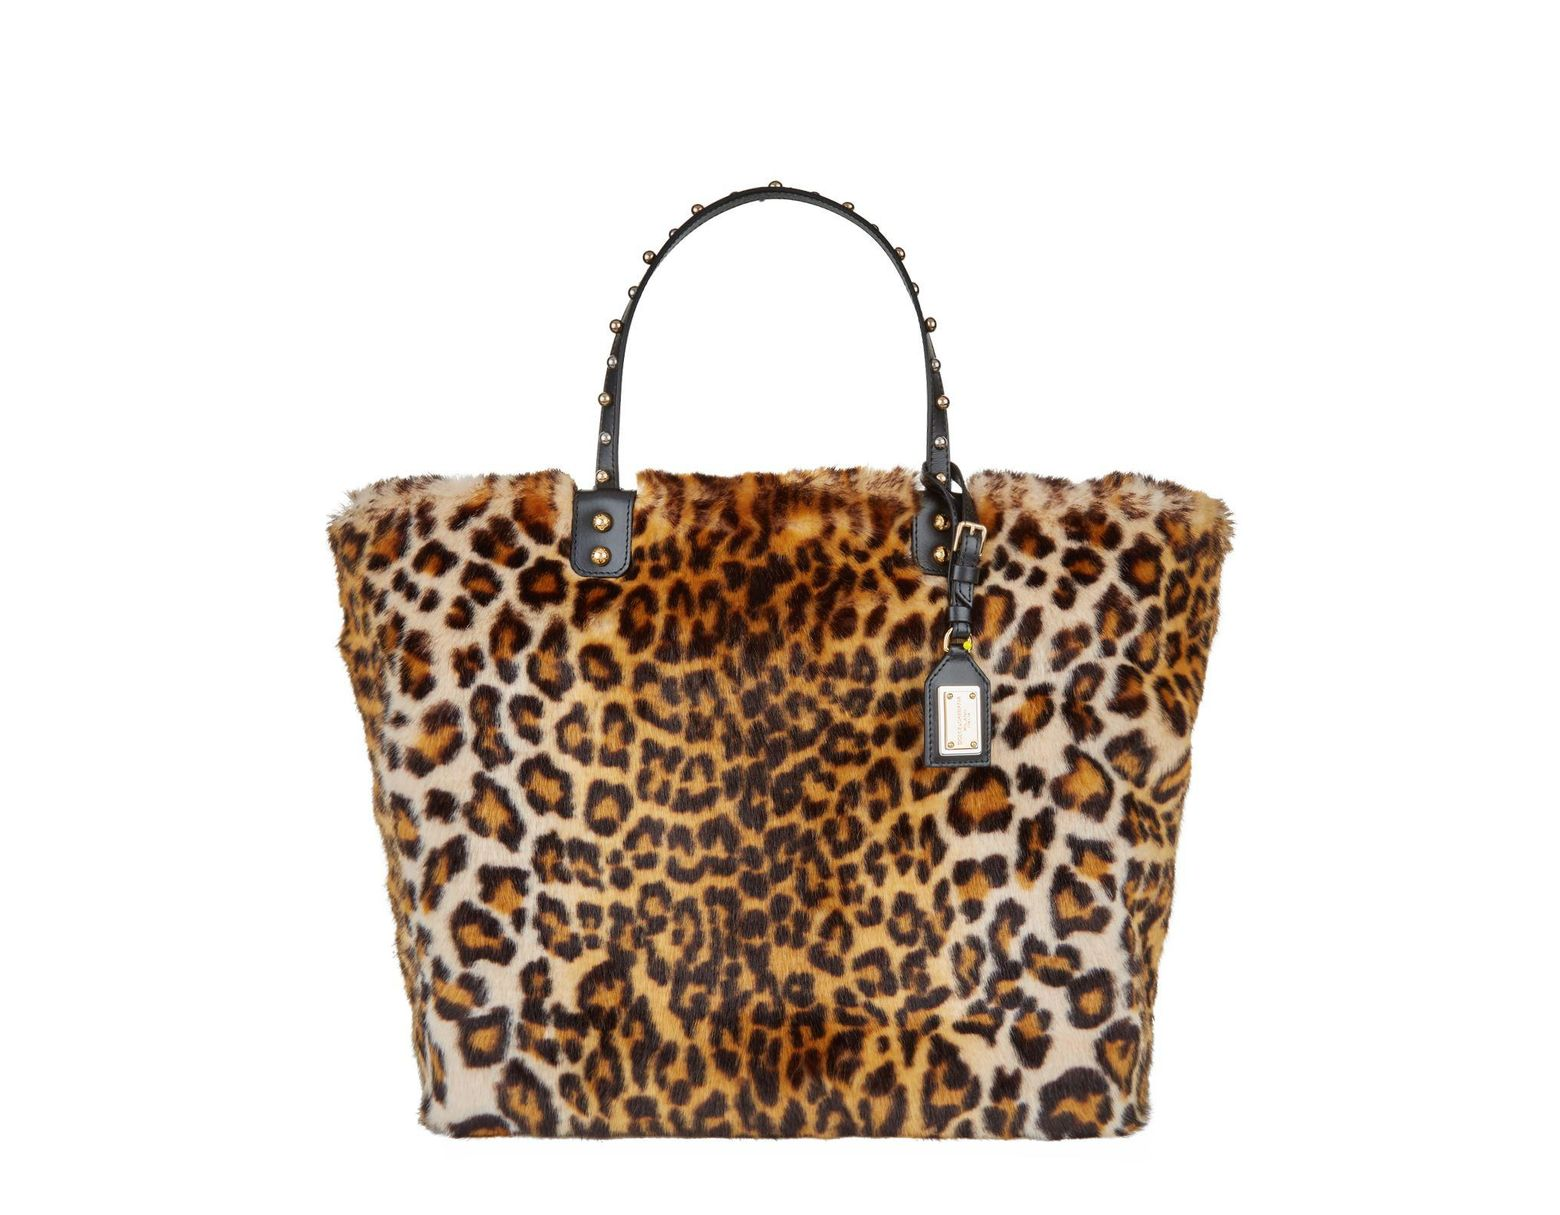 925c4b188 Dolce & Gabbana Beatrice Shopping Bag In Leopard Faux Fur in Brown - Save  55% - Lyst